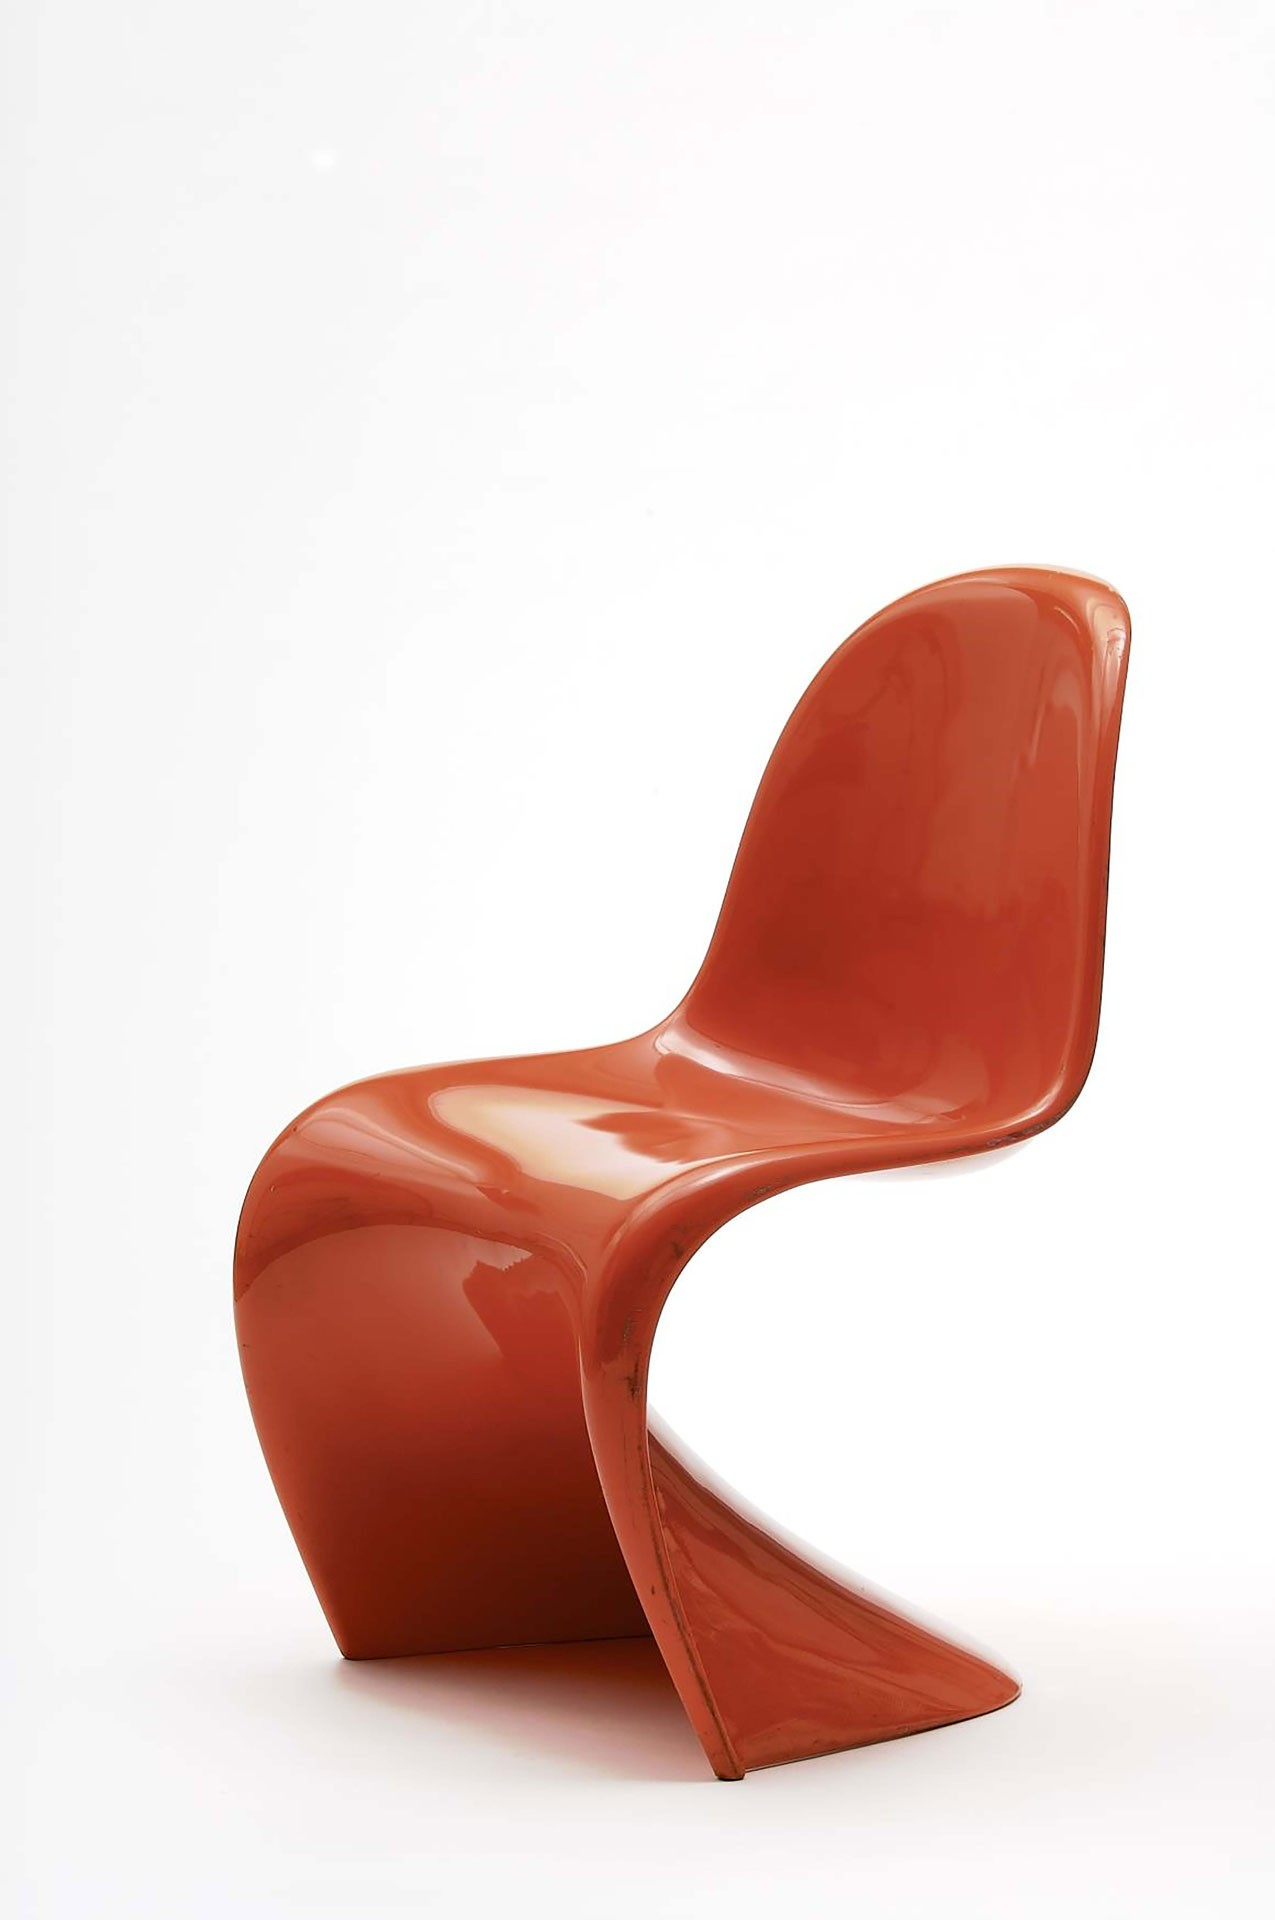 <BODY>Verner Panton, <em>Panton Chair, </em>Copenhagen, 1967<br />Polyurethane, painted orange<br />© MAK/Georg Mayer</BODY>